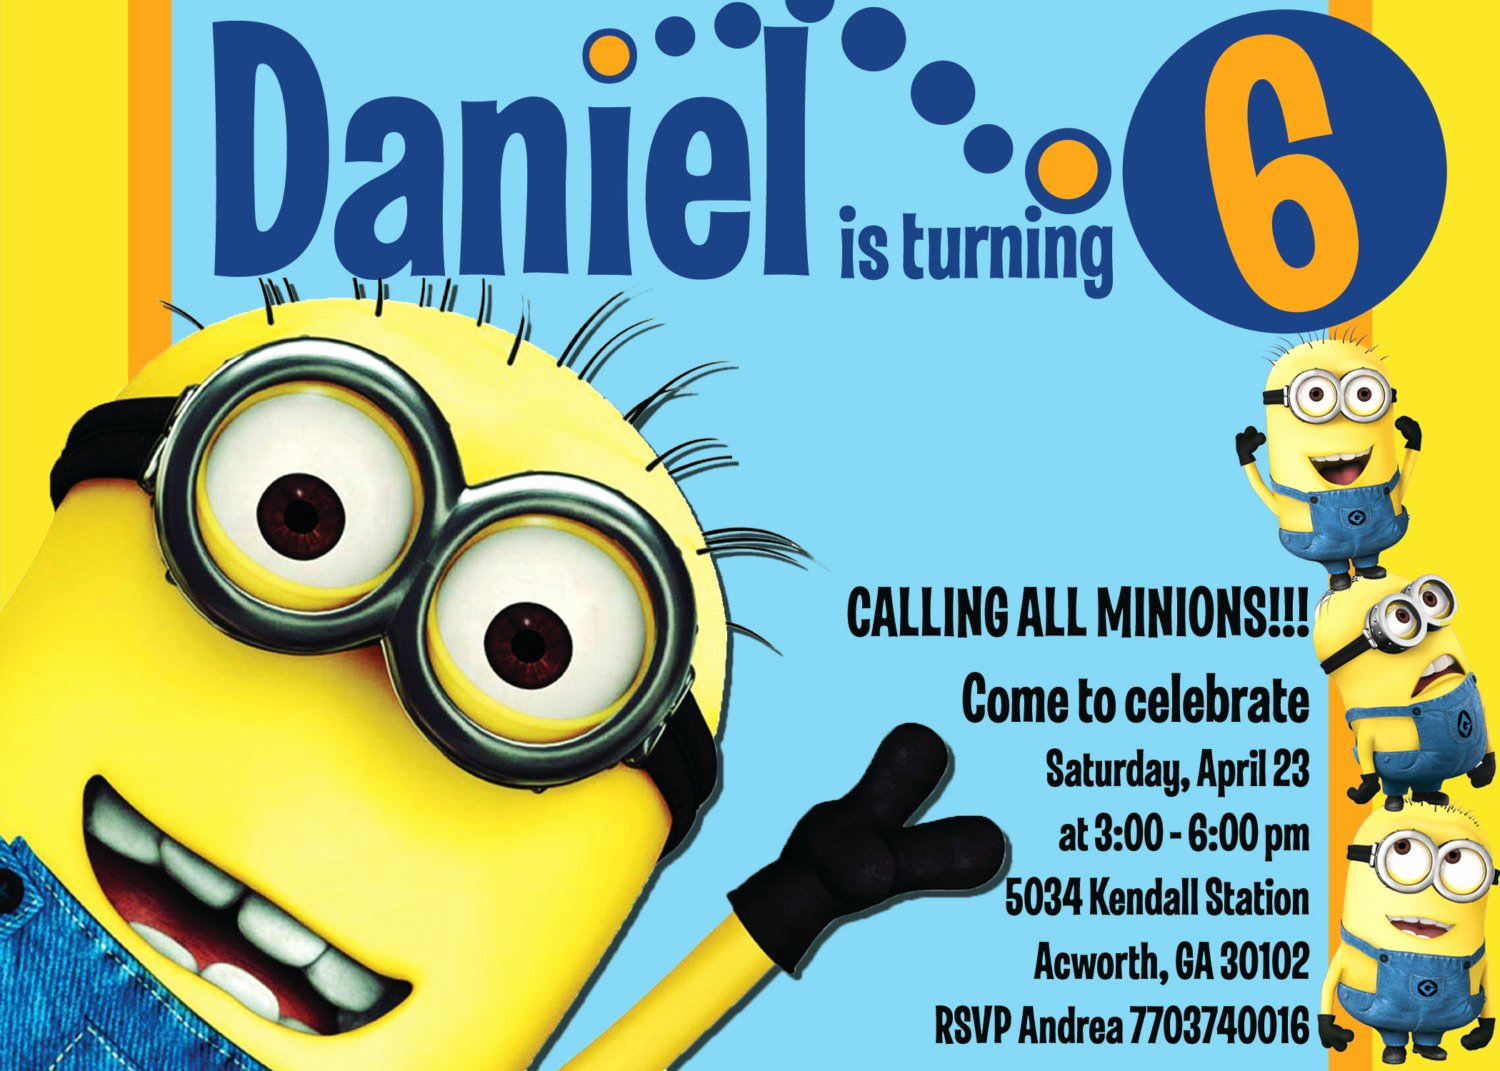 Minions Birthday Invitation Maker Elegant Minion Birthday Invitations Minion Birthday Invitations